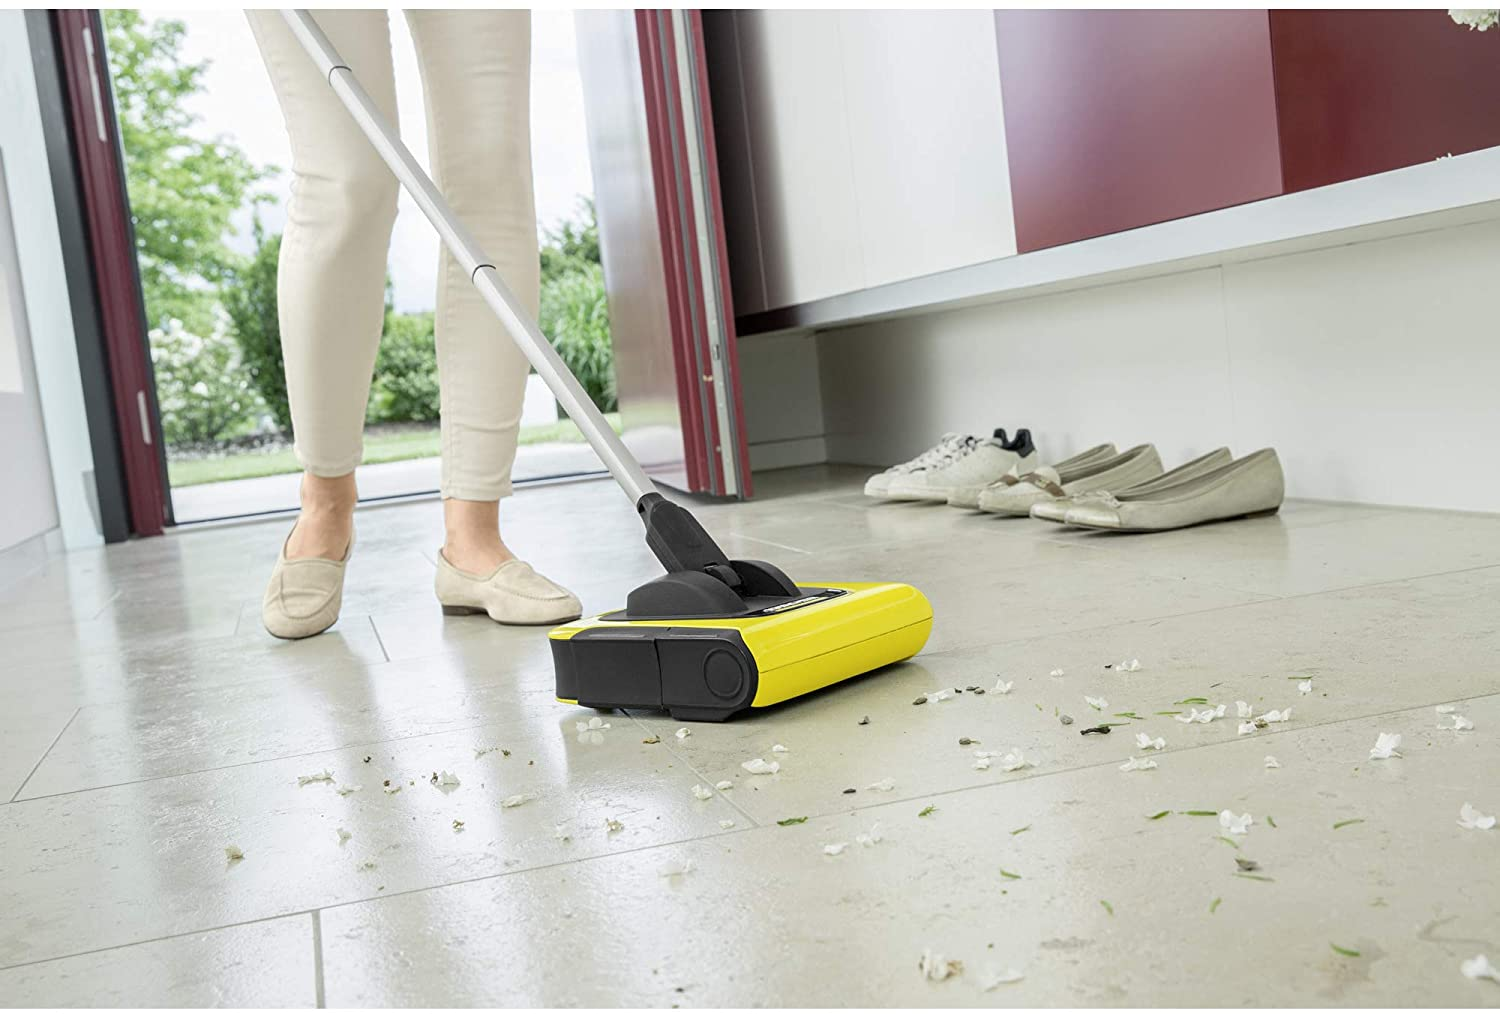 KARCHER KB5 Chargeable Vaccum Cleaner